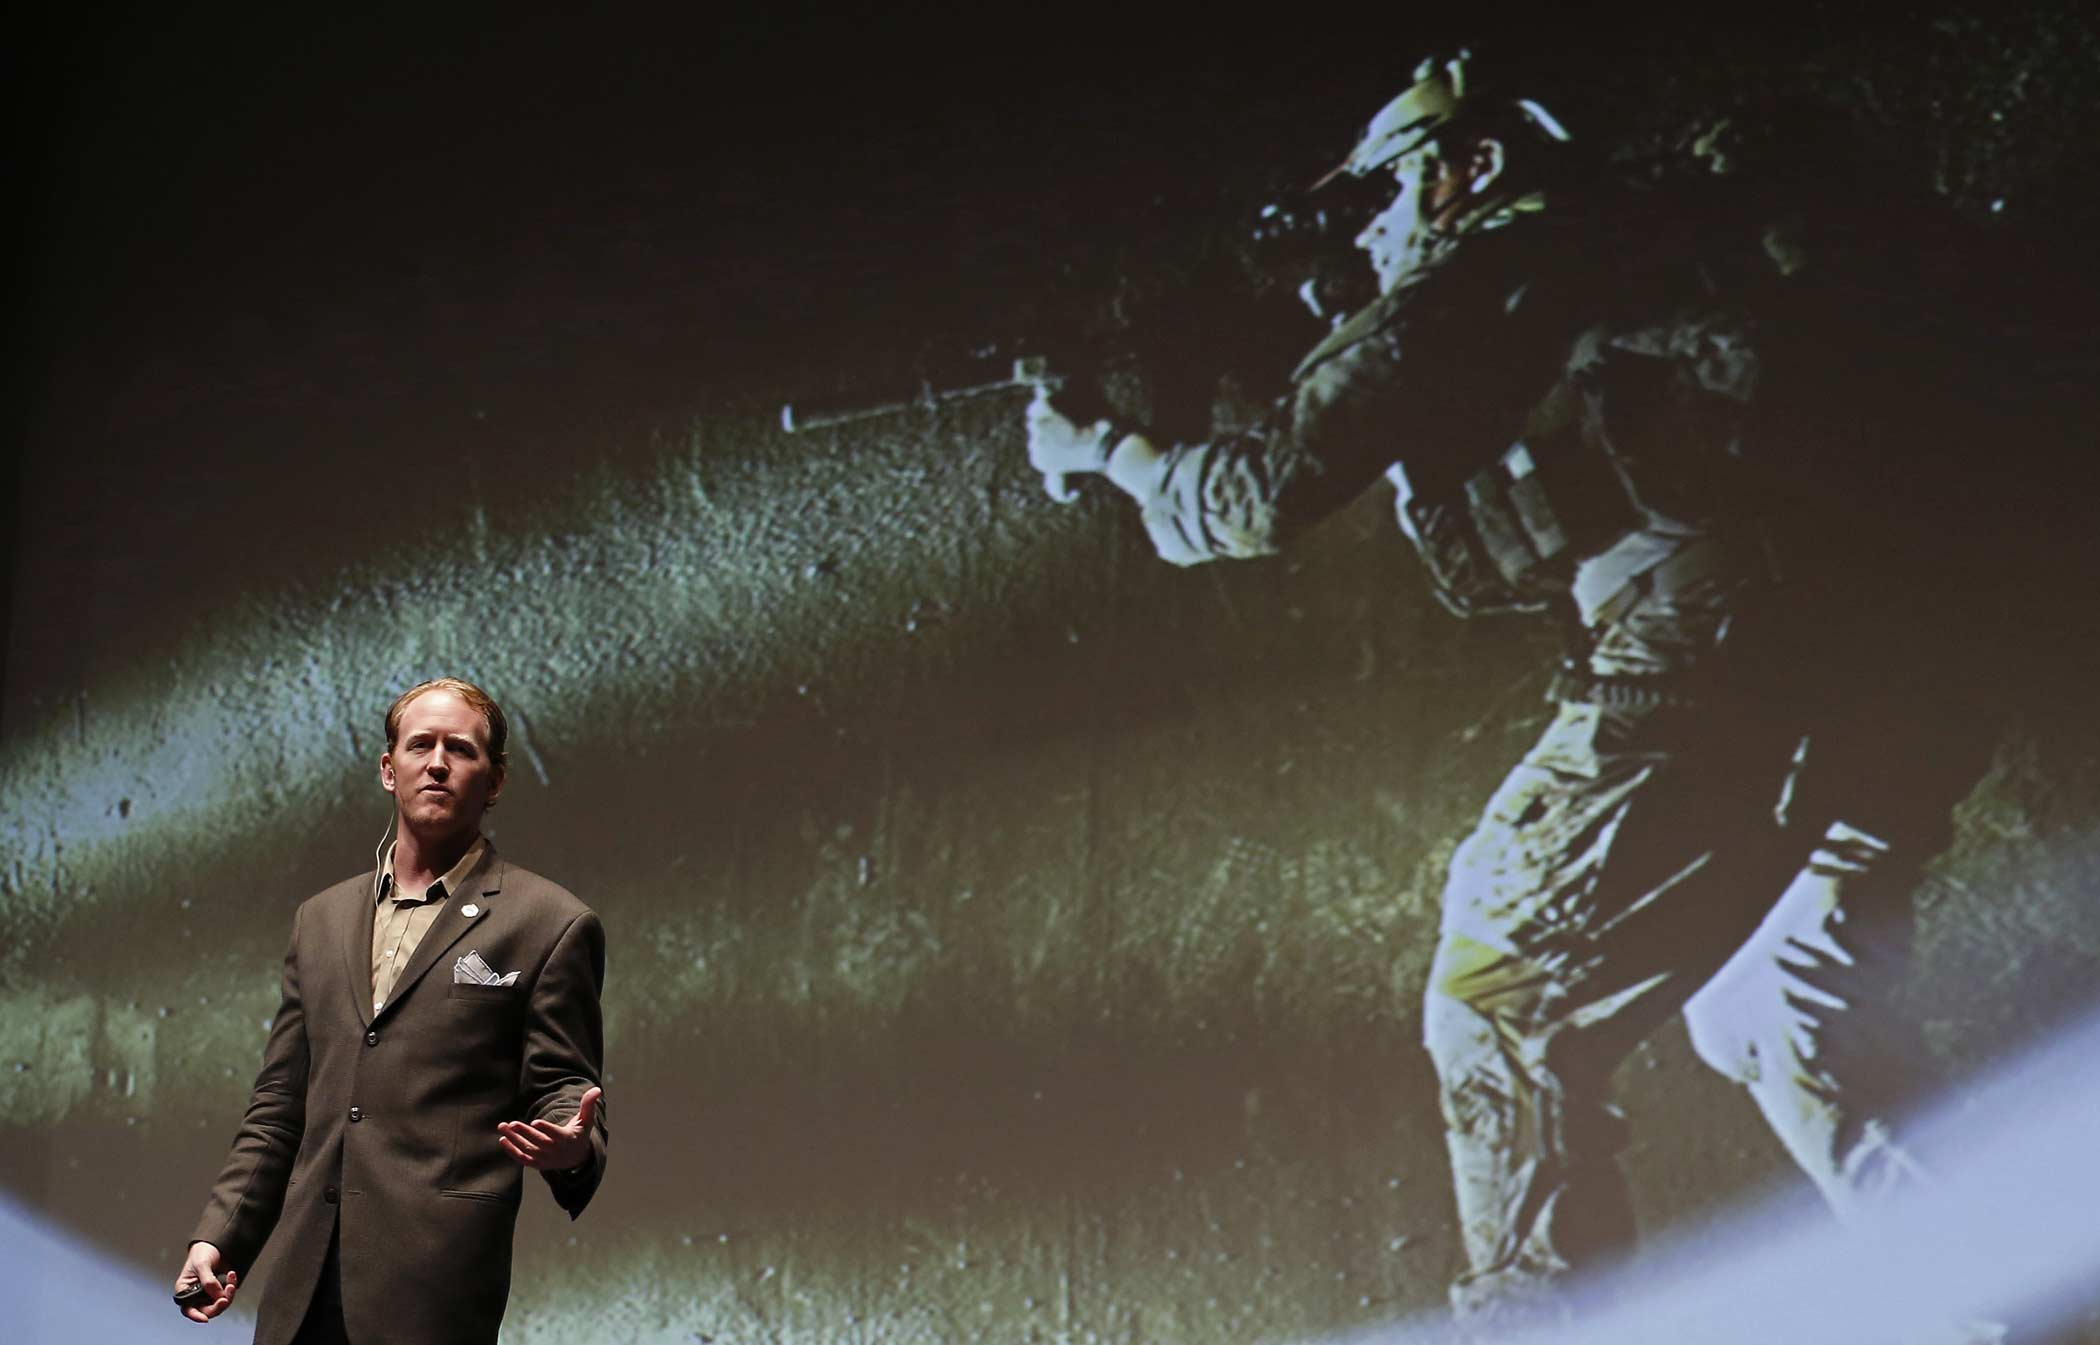 Robert O'Neill, a former U.S. Navy SEAL, speaks at the  Best of Blount  Chamber of Commerce awards ceremony at the Clayton Center for the Arts in Maryville, Tennessee, U.S., on Thursday, Nov. 6.